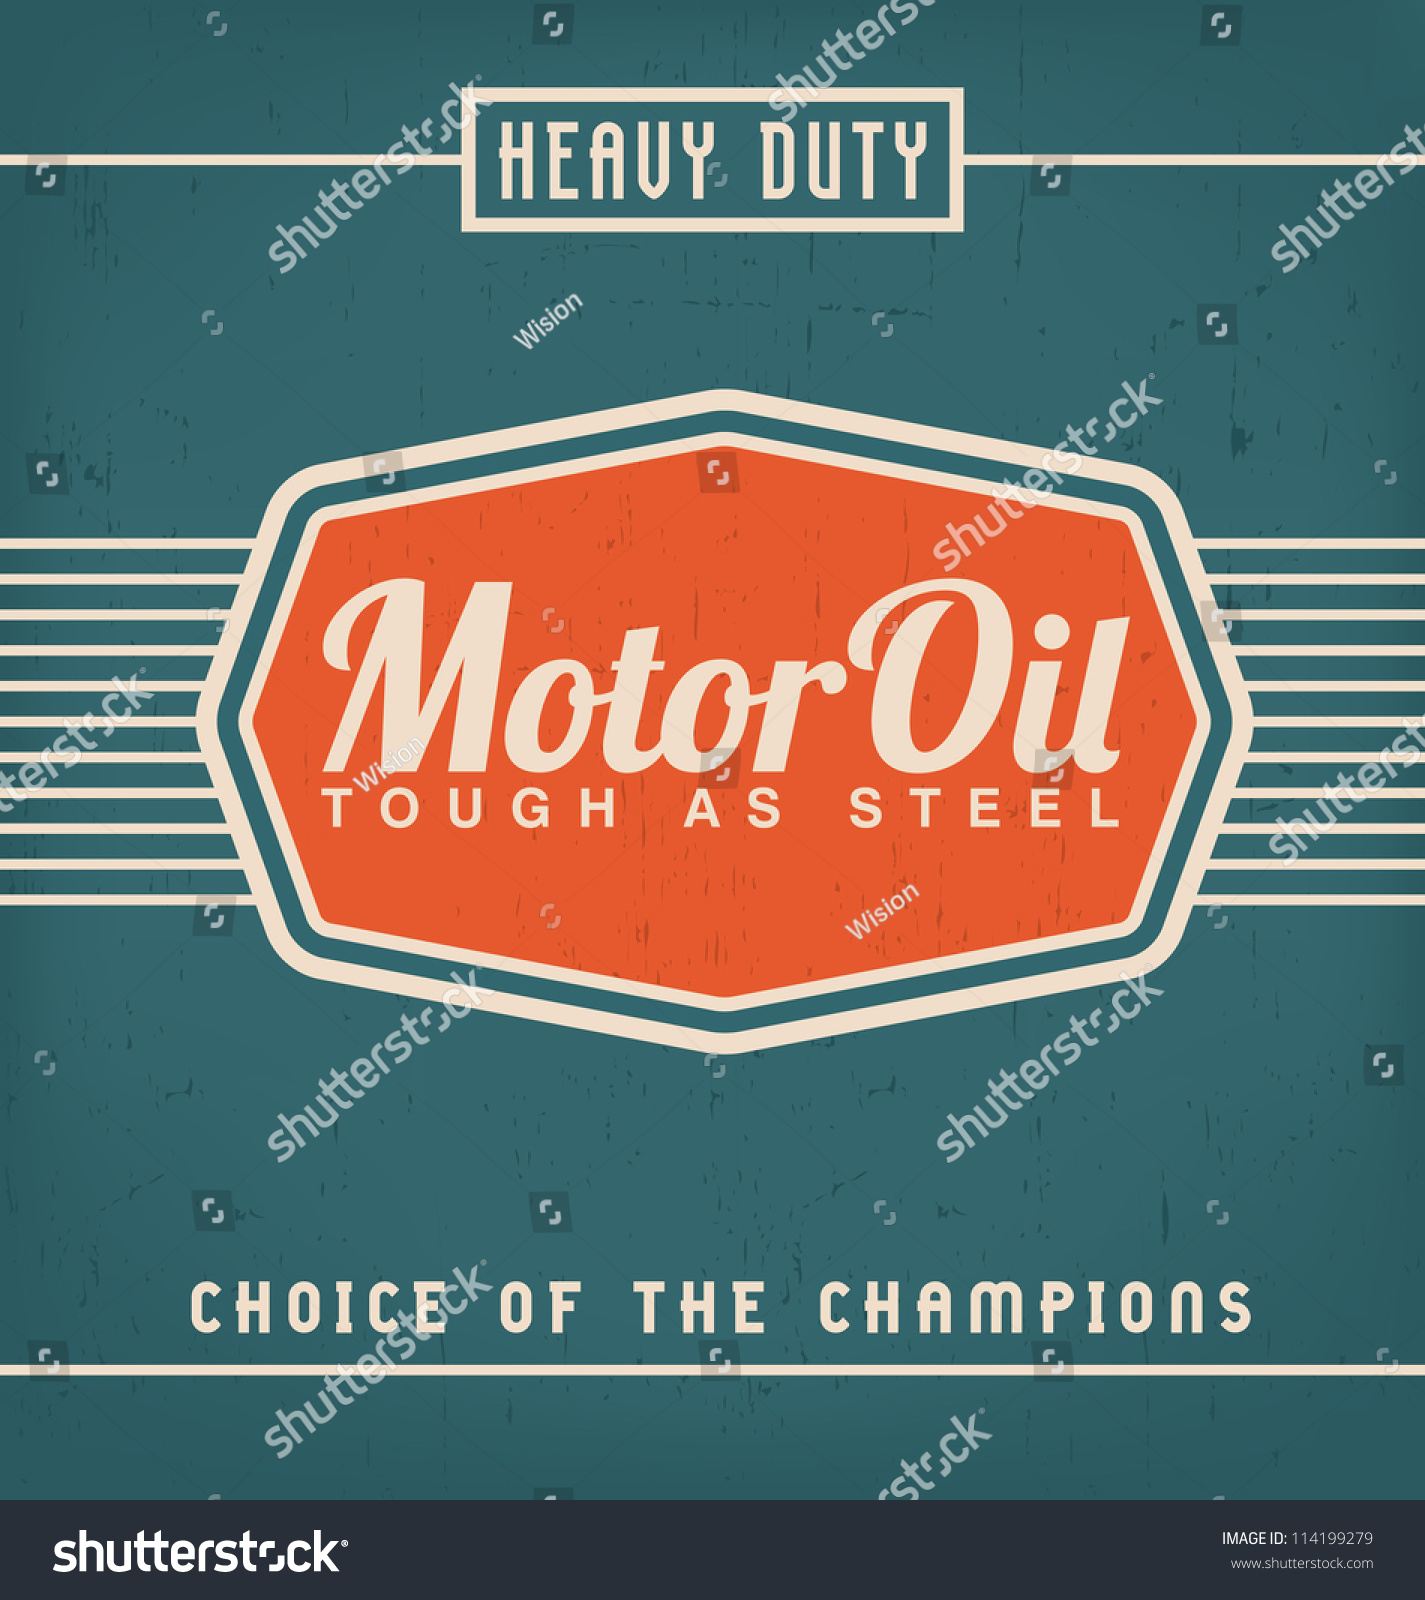 Vintage Label Design Template Stock Vector 114199279 - Shutterstock